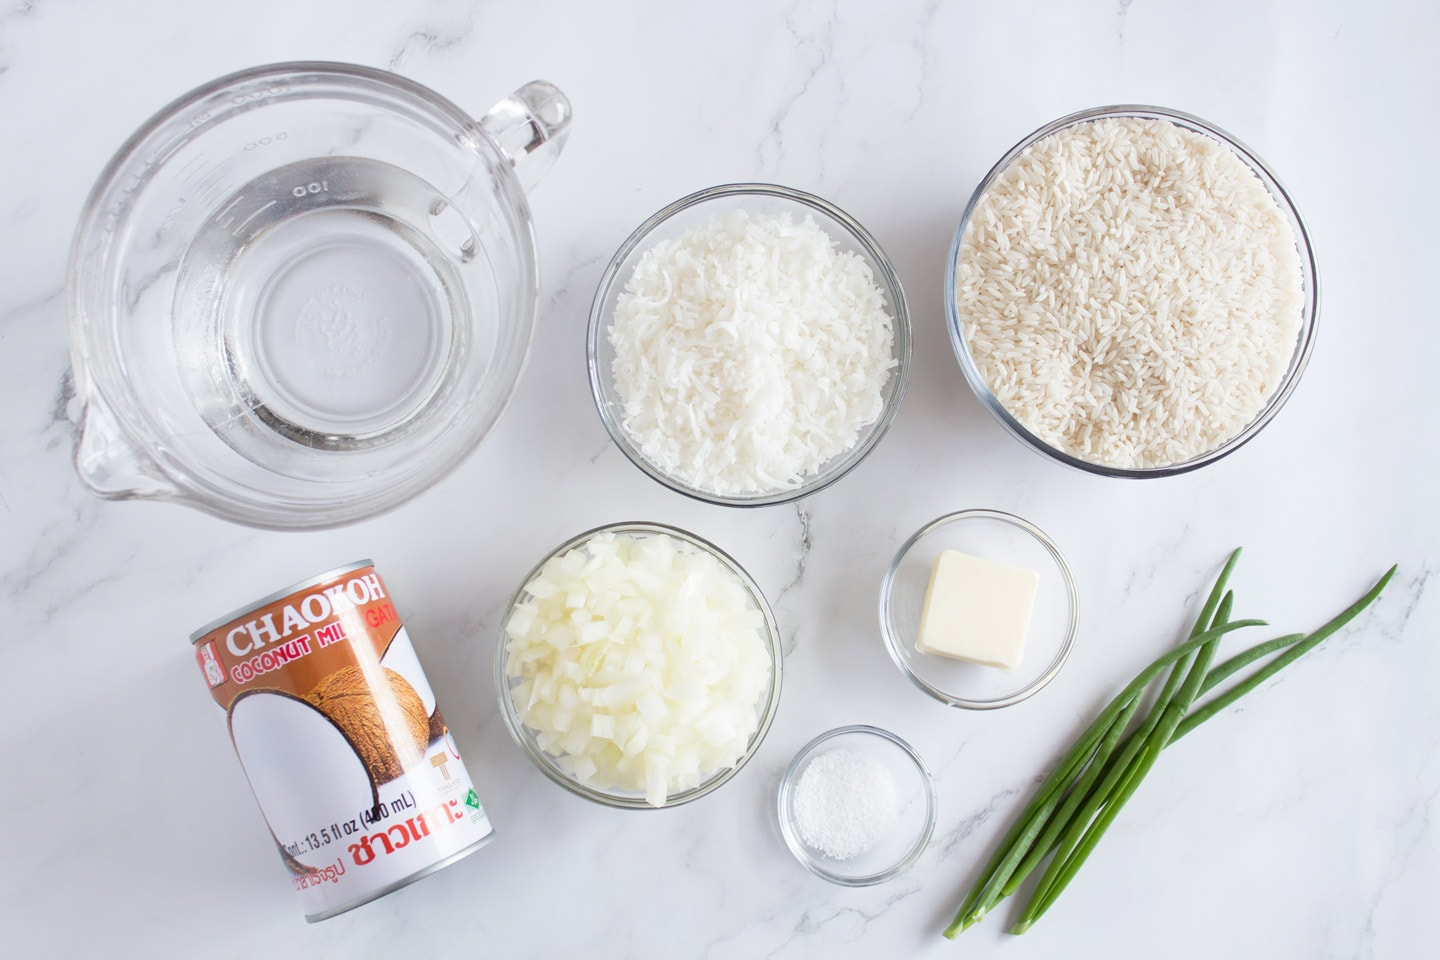 Ingredients for rice on white counter